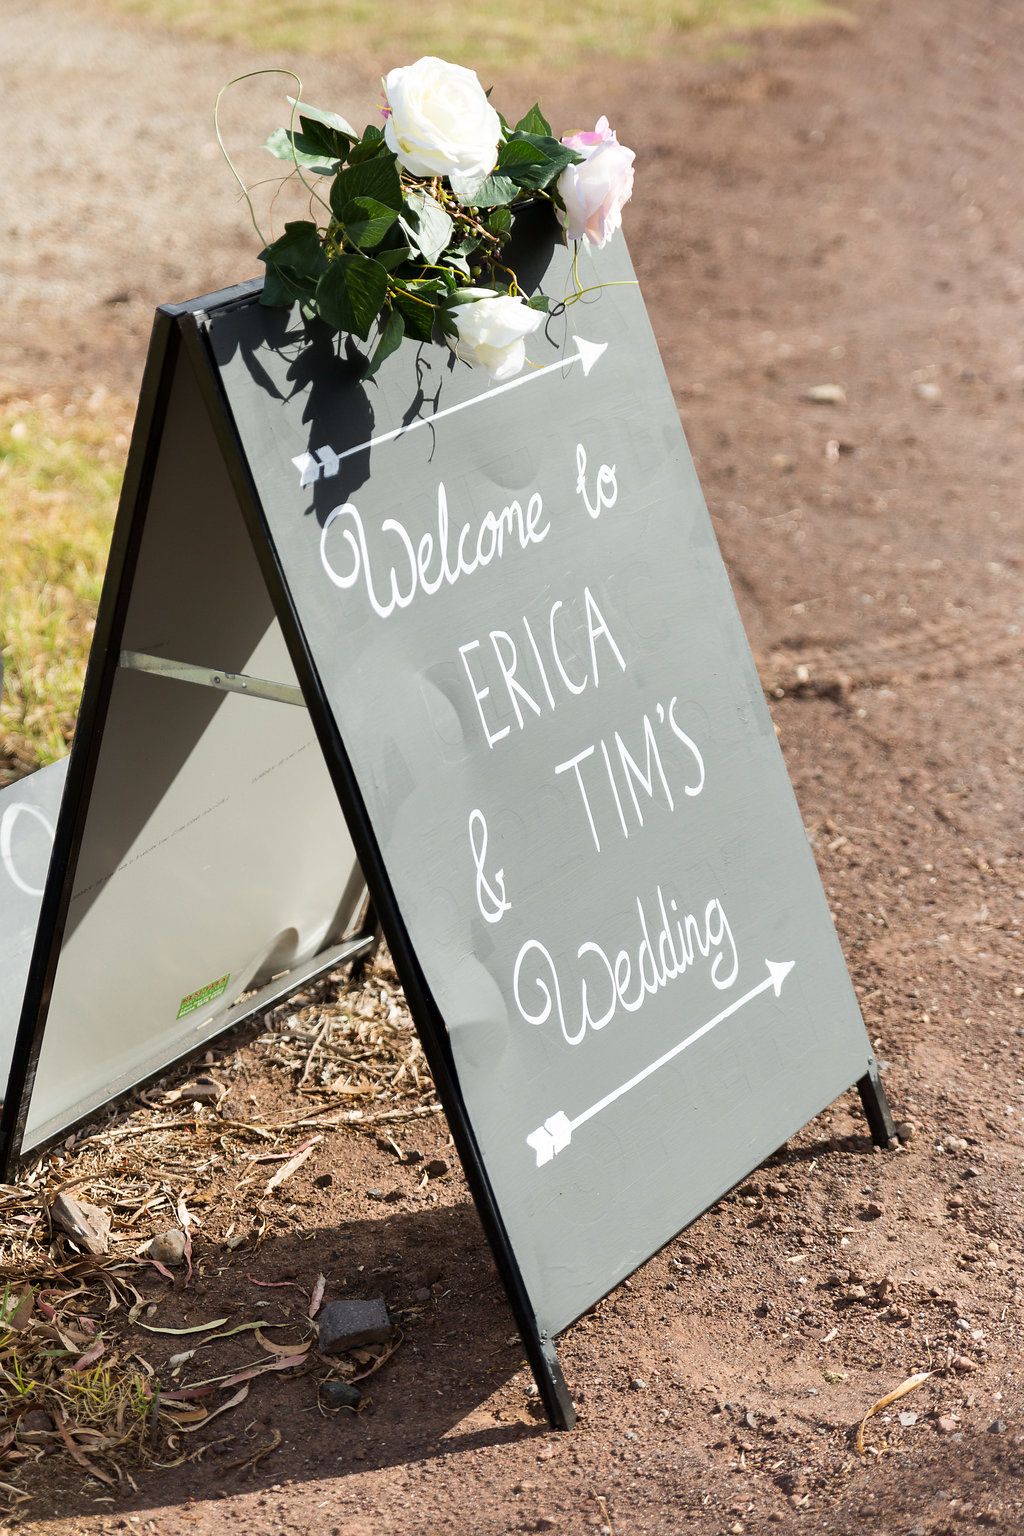 Erica&TimFinals-605.jpg